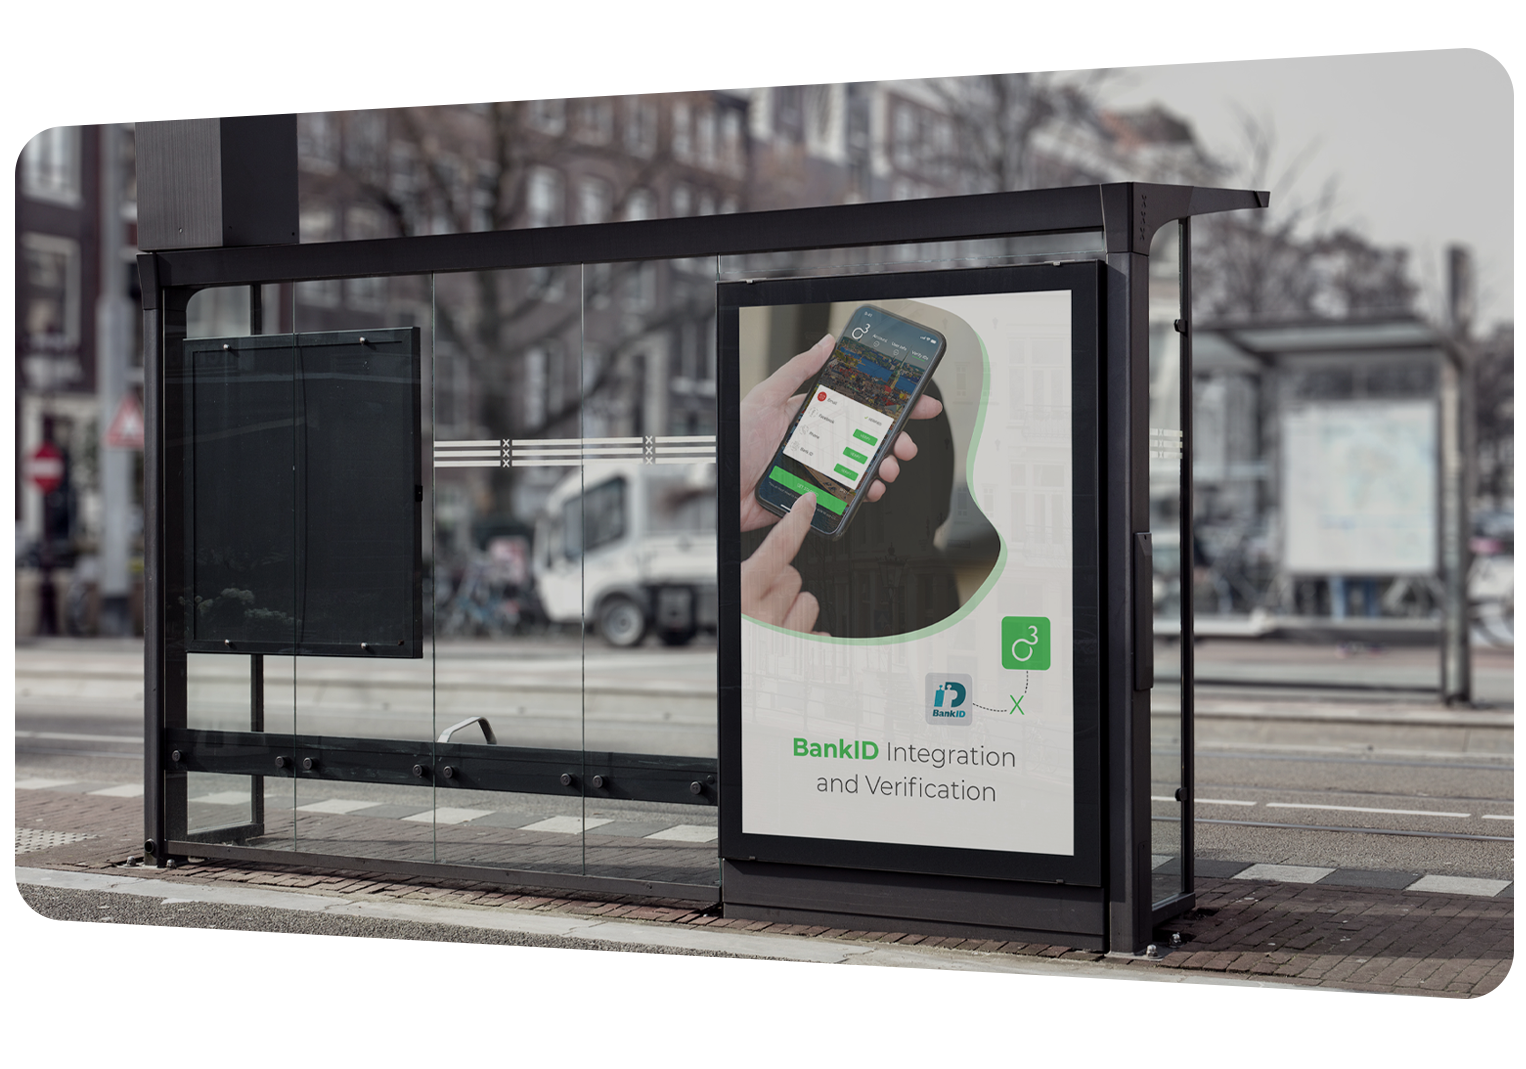 mobile-app-marketing-billboard-1